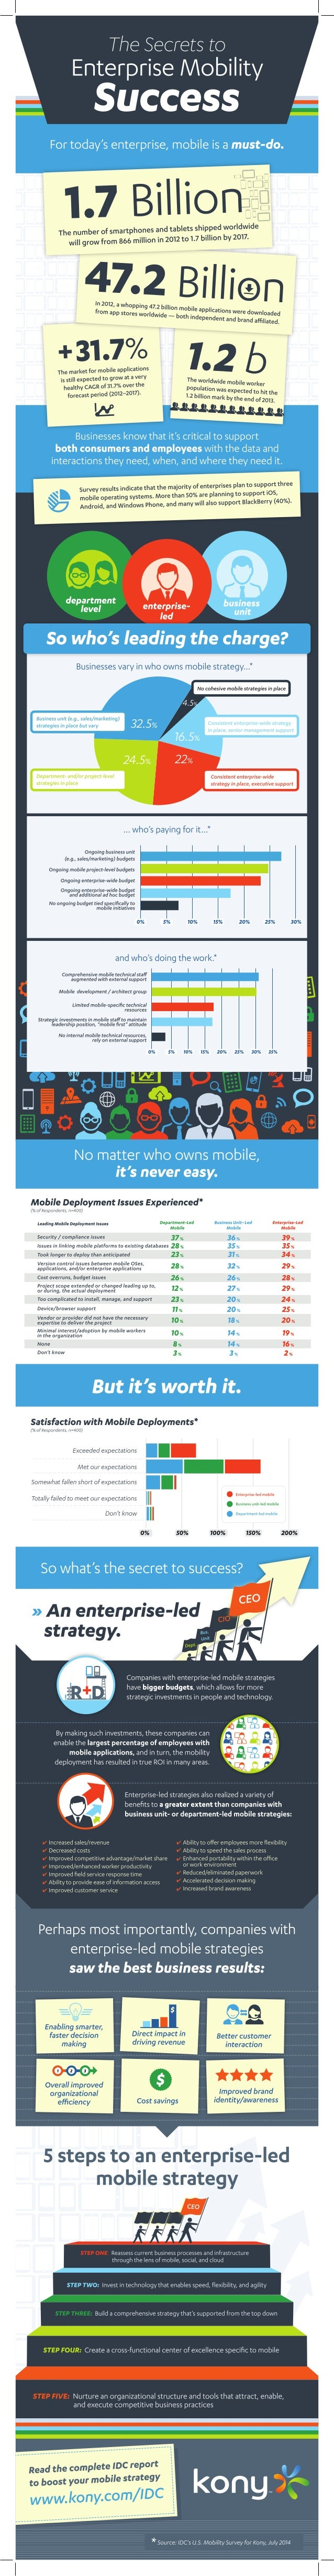 INFOGRAPHIC: Secrets of Enterprise Mobility Success